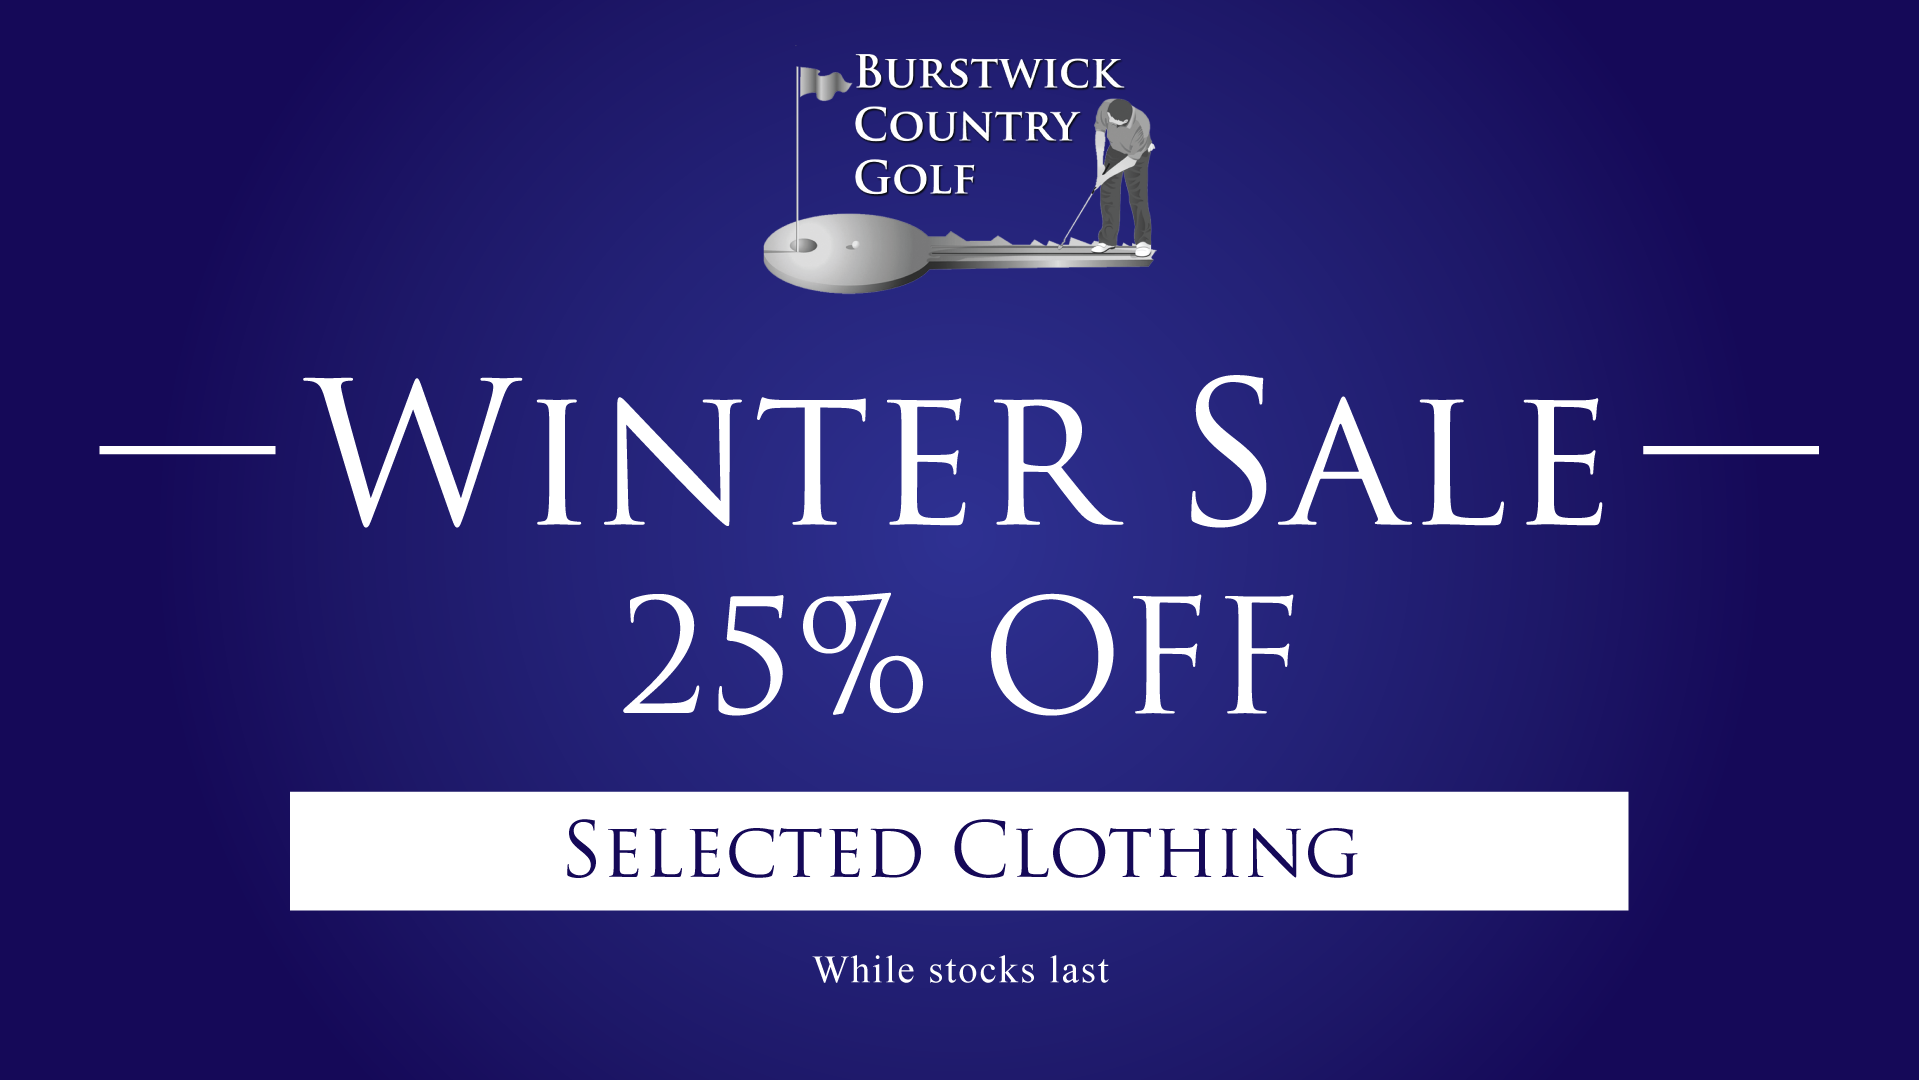 Winter Golf Pro Shop Sale